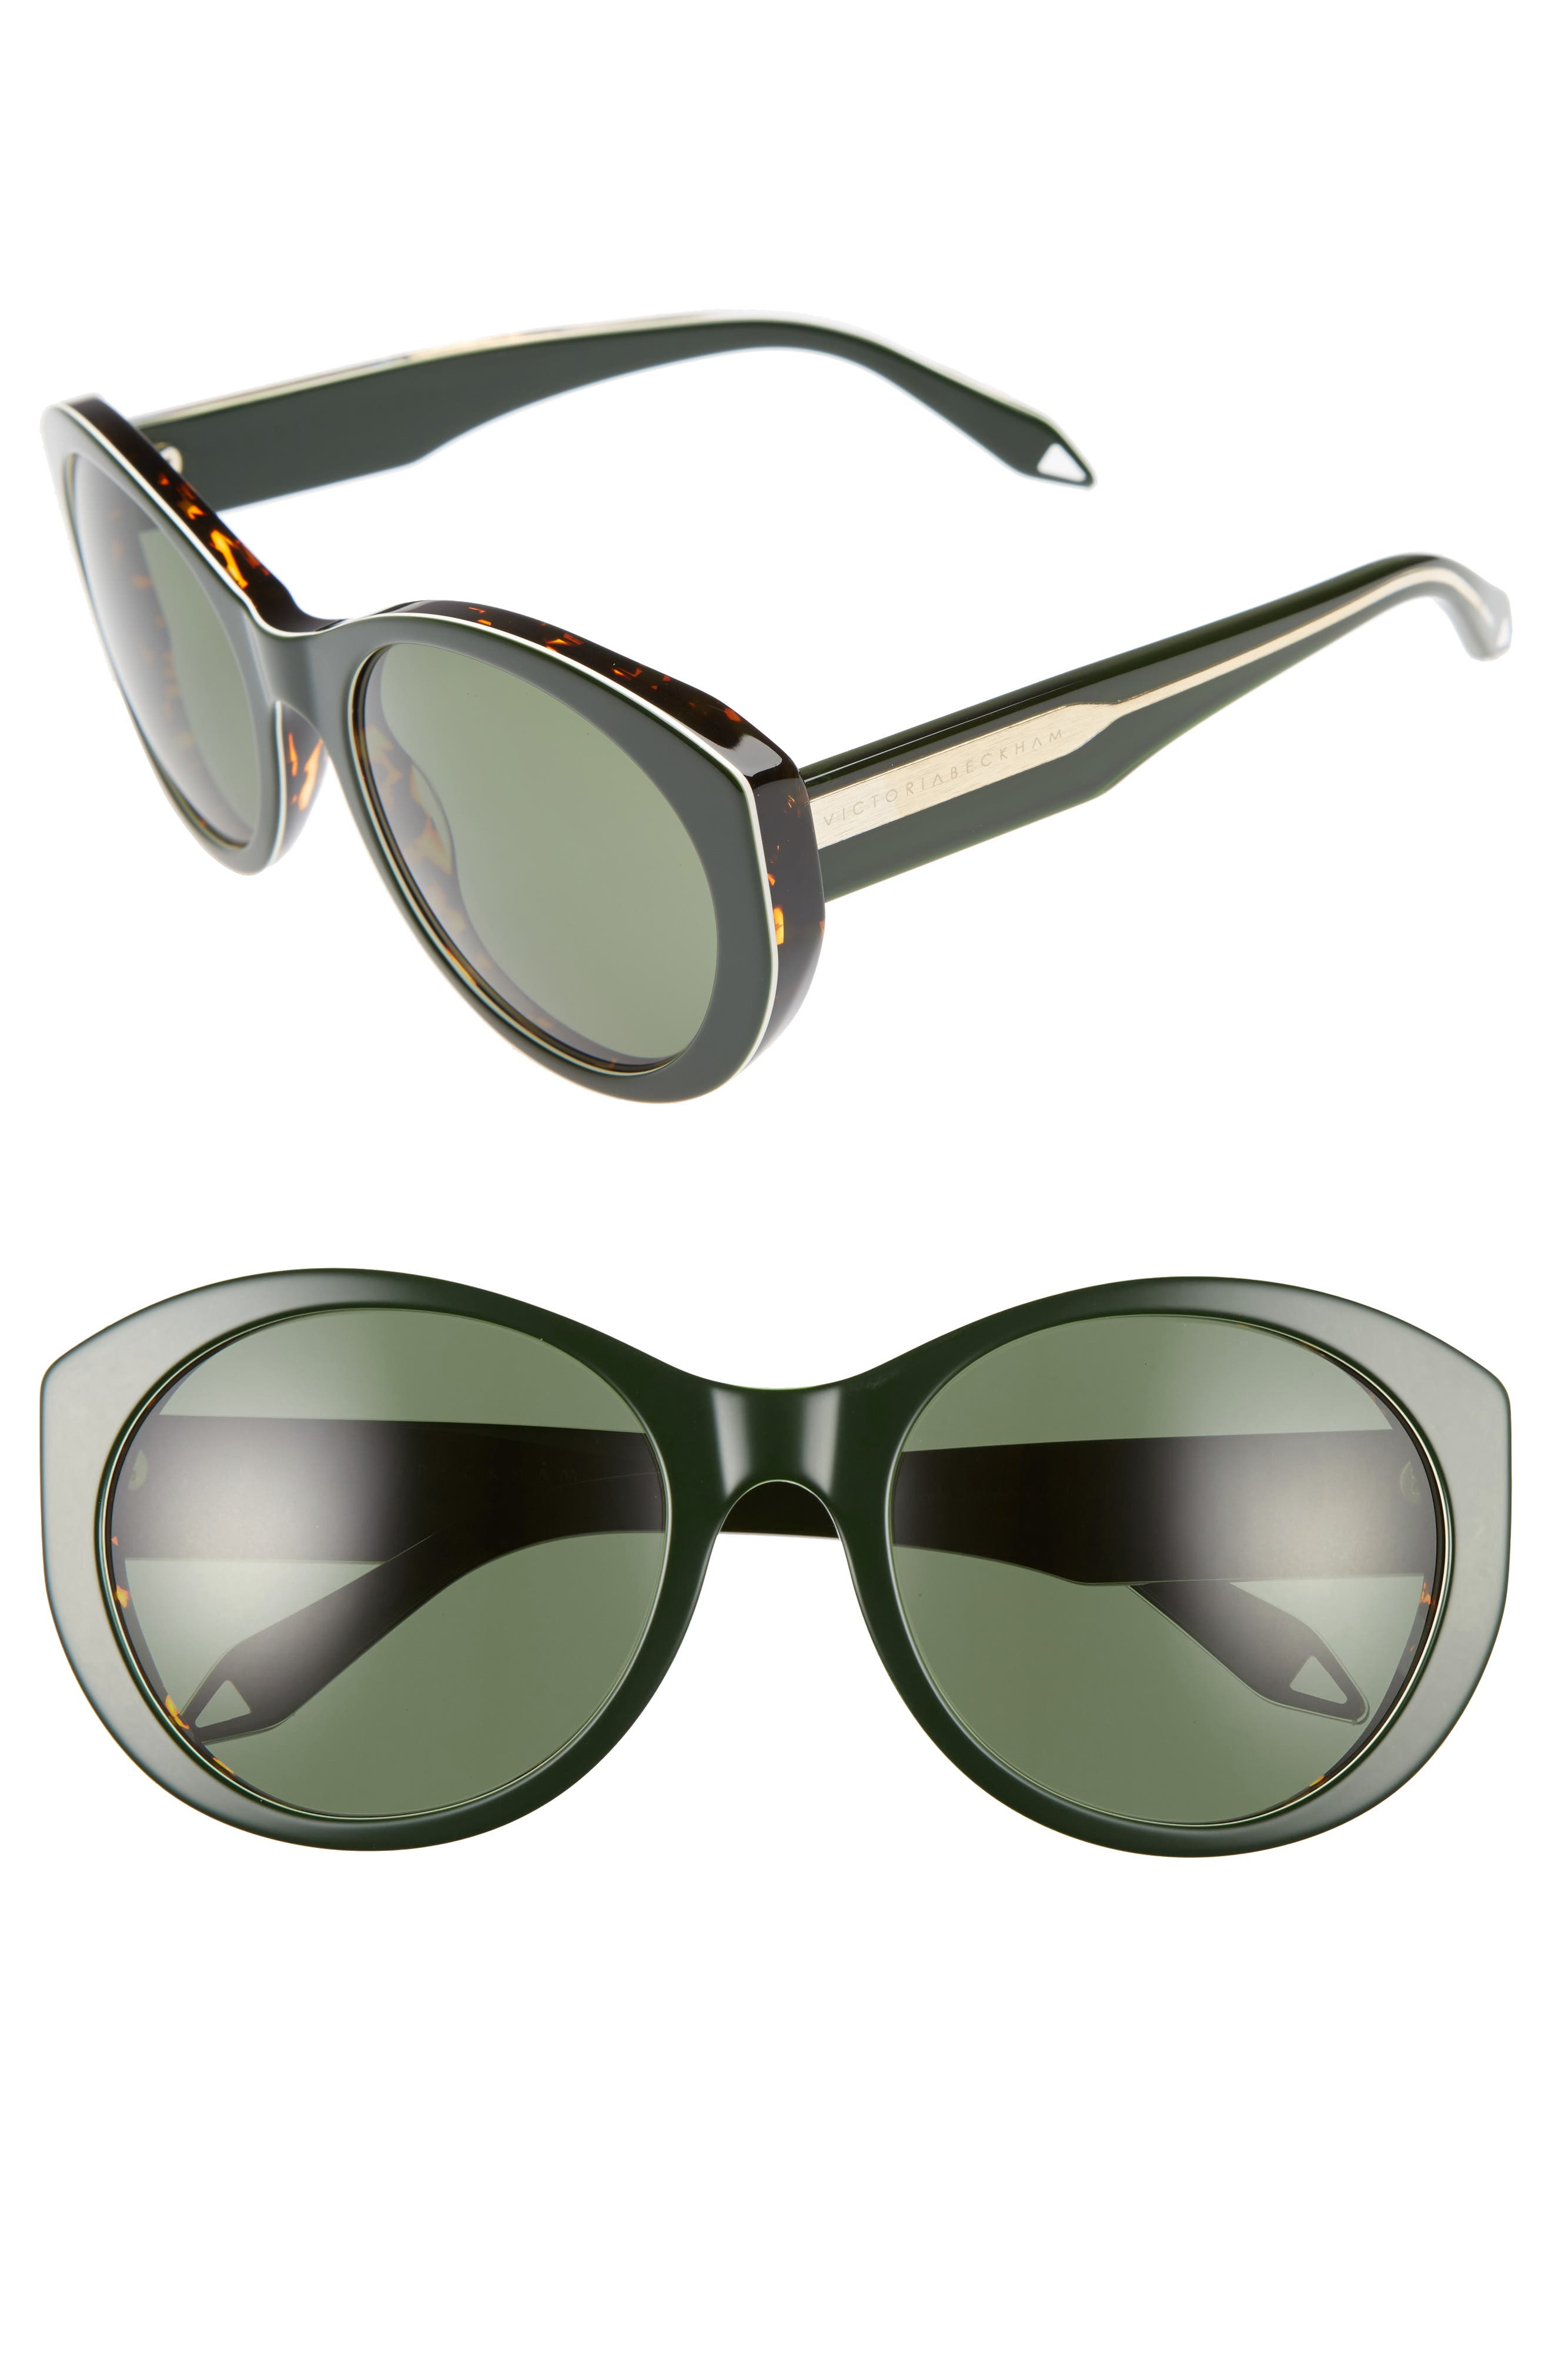 Fine Oval 59mm Sunglasses,                             Main thumbnail 1, color,                             Green/ Grey